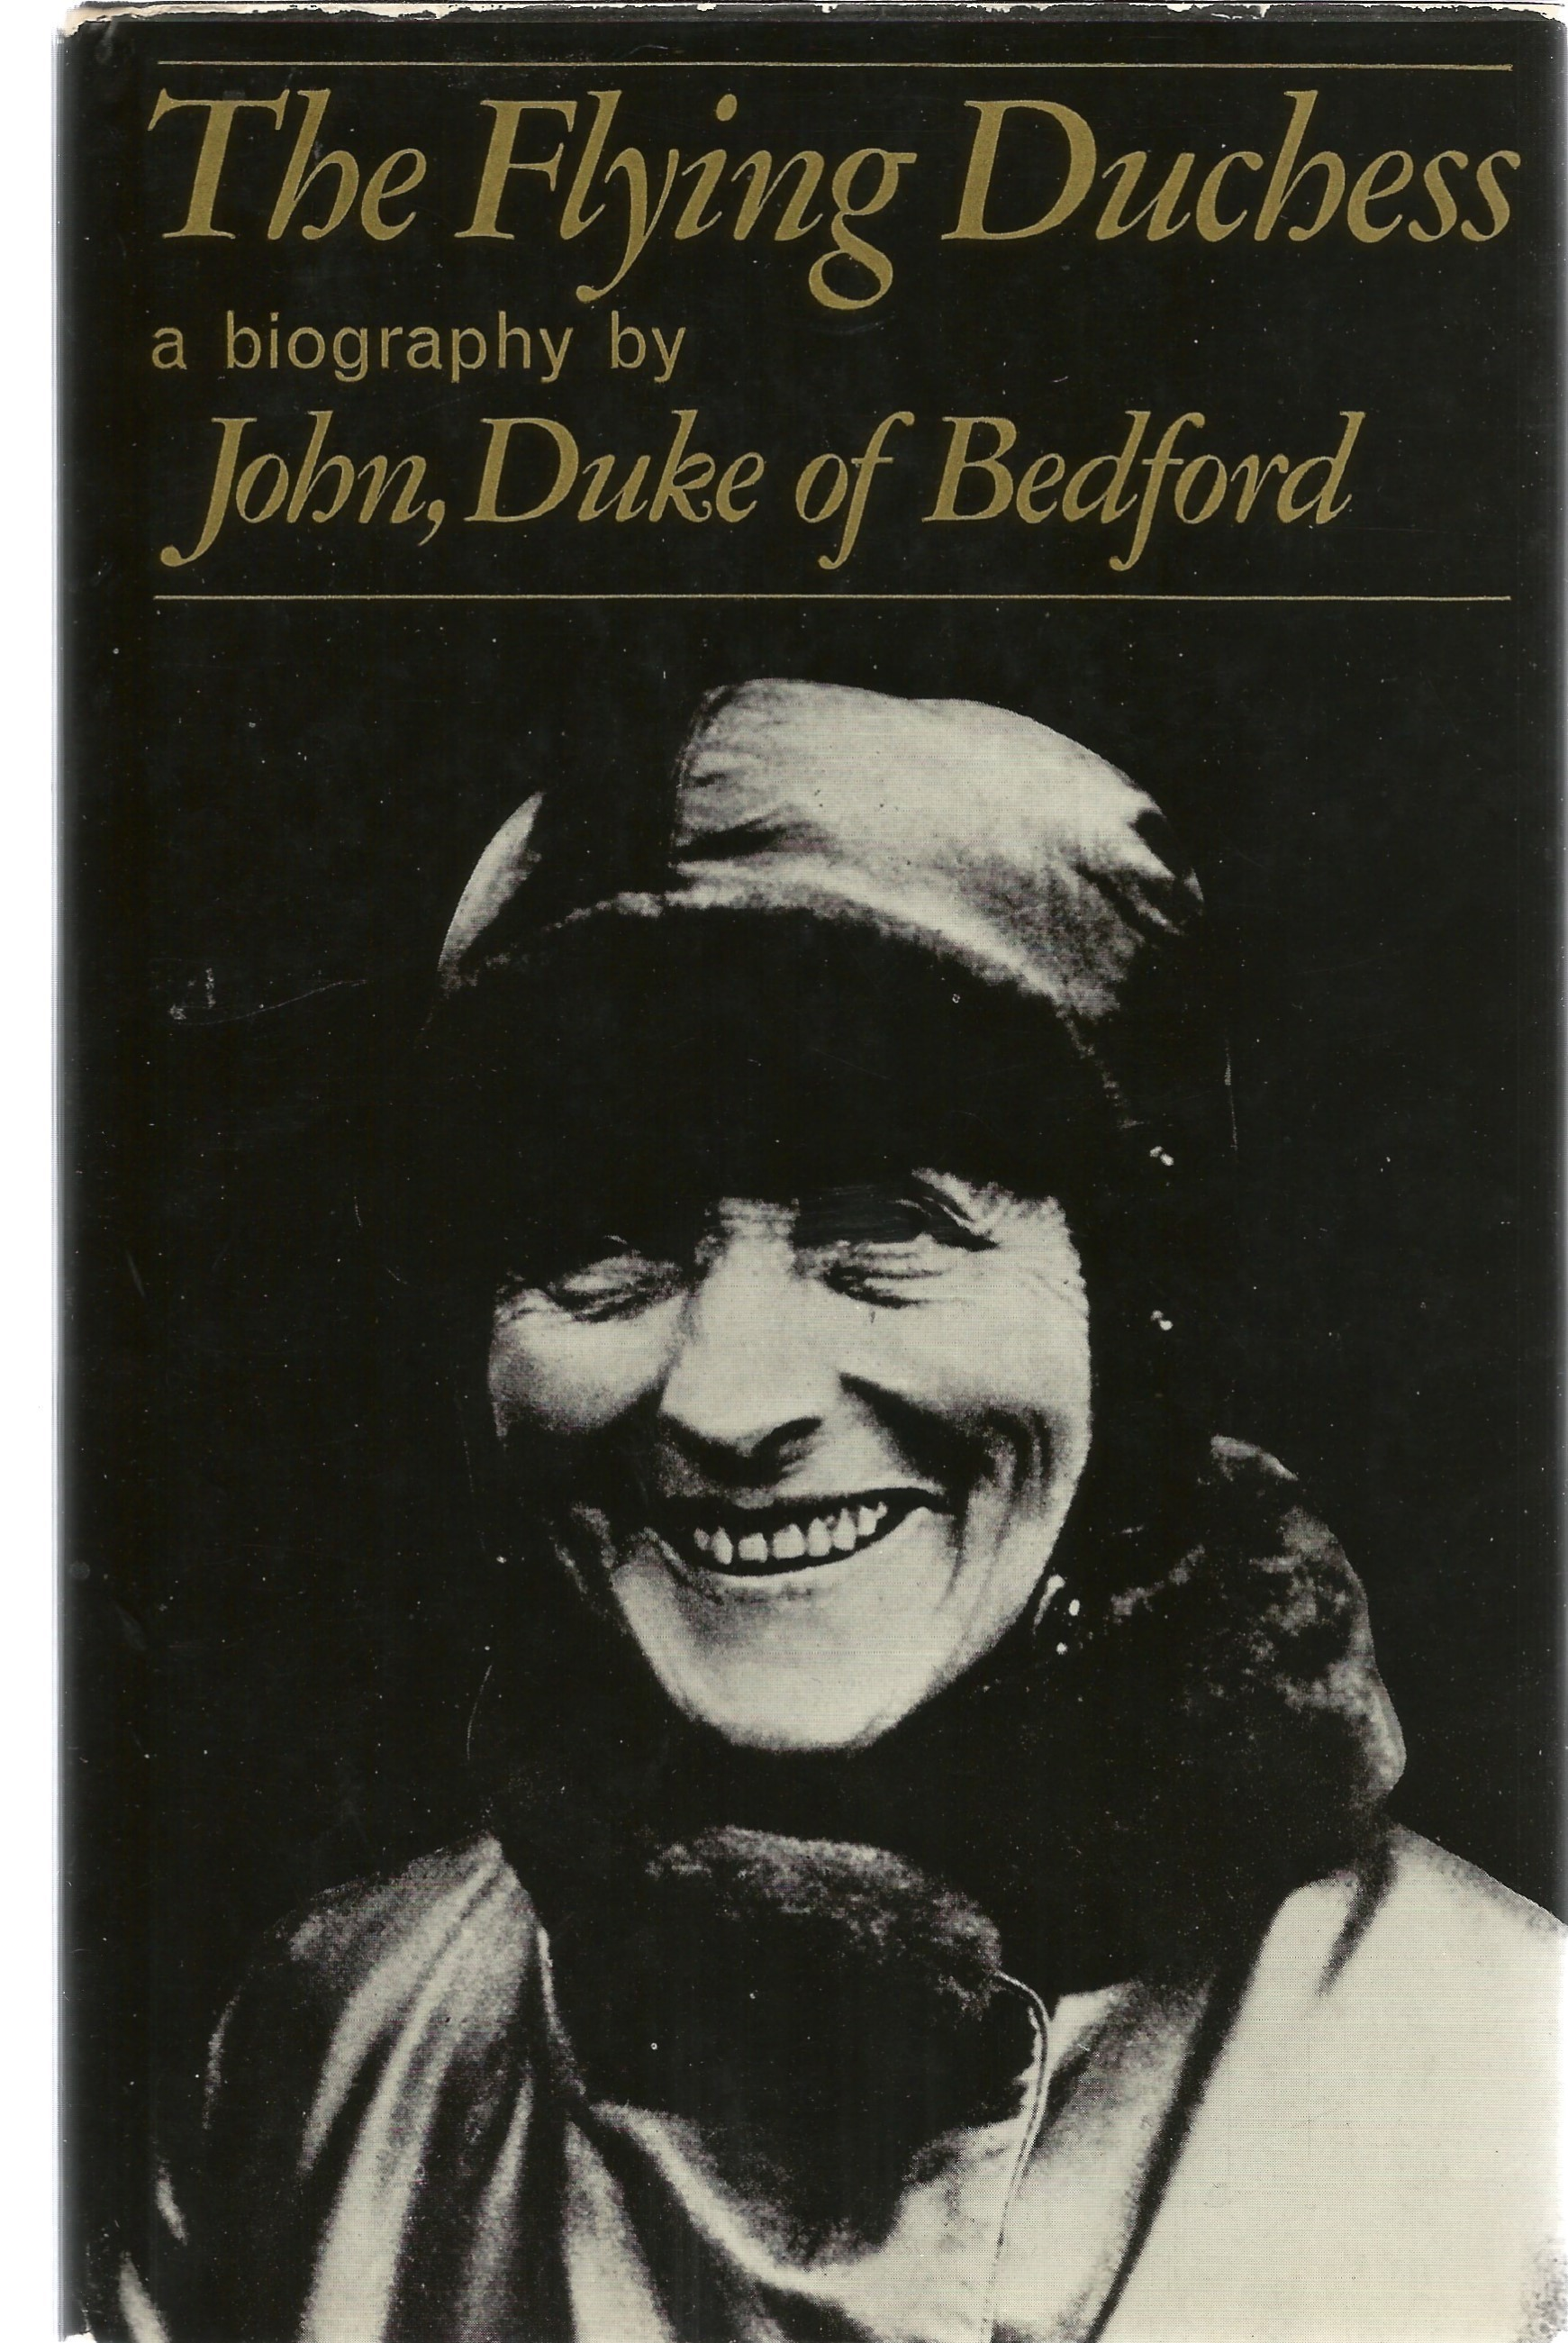 John, Duke Of Bedford. The Flying Duchess, a biography. A First Edition hardback book, showing signs